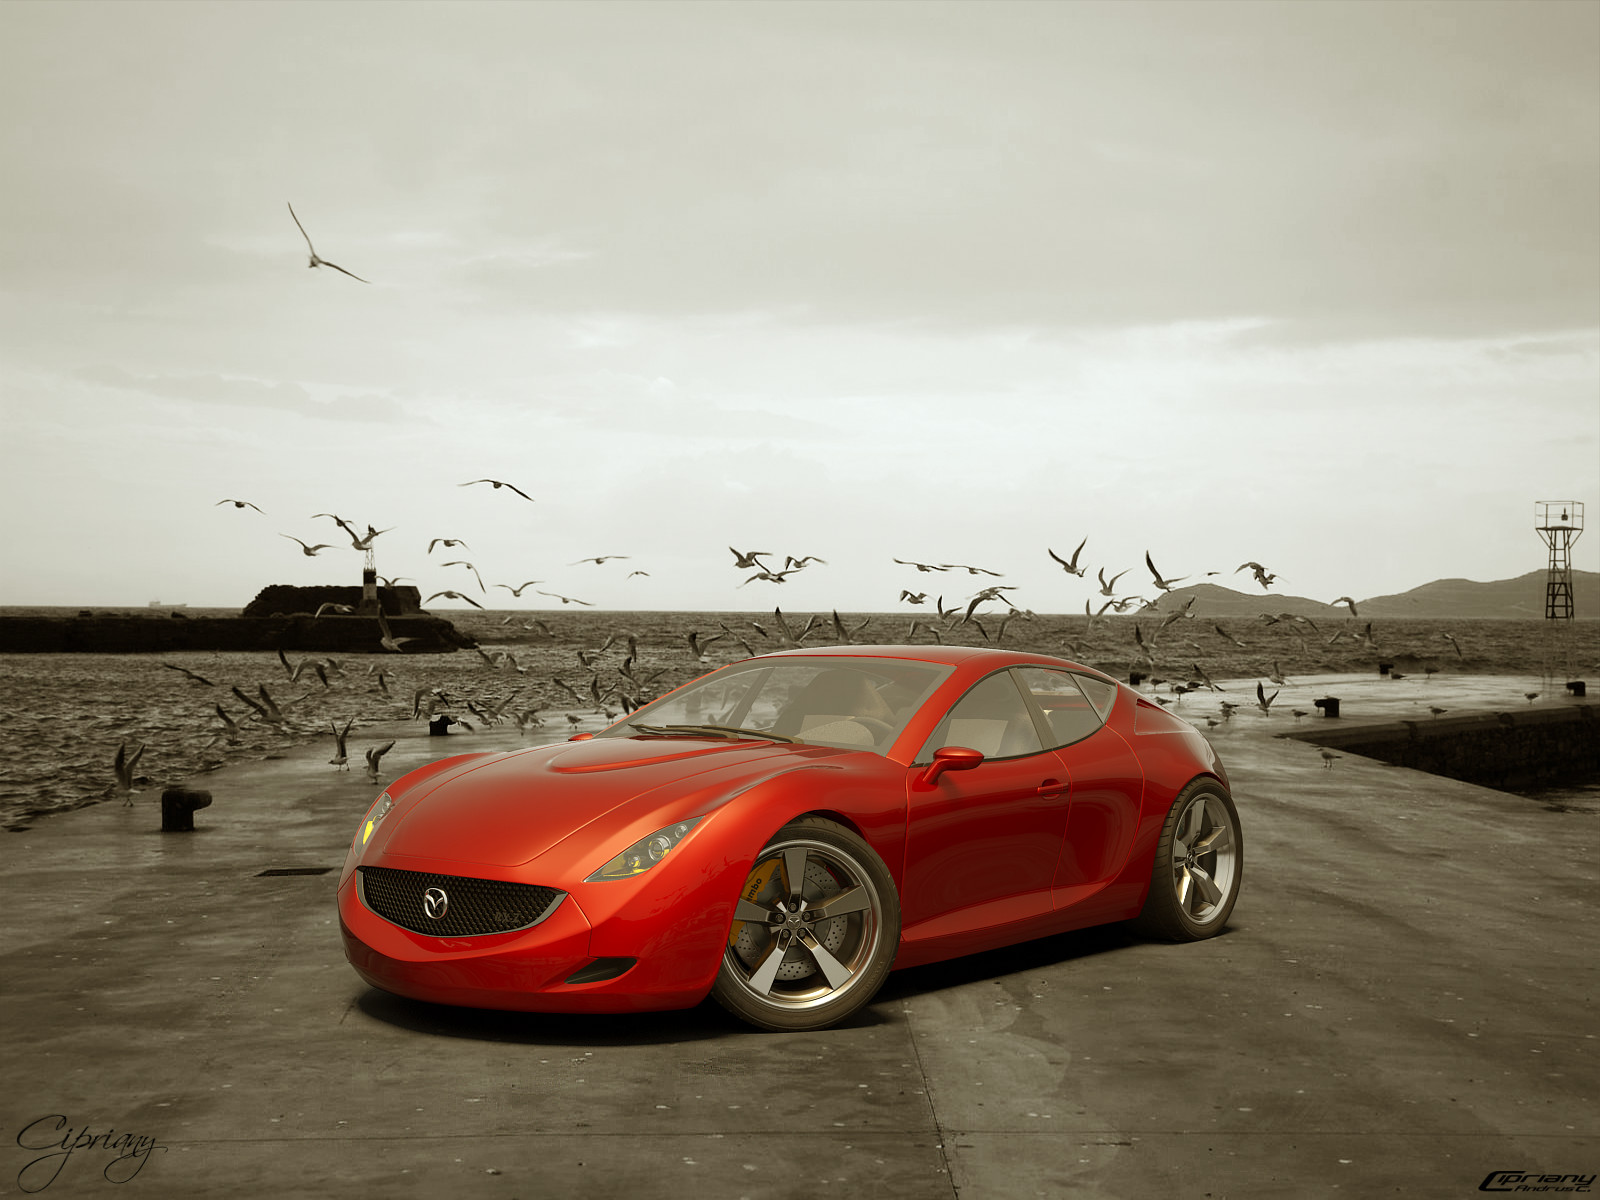 Mazda RX-Z concept 20 by cipriany